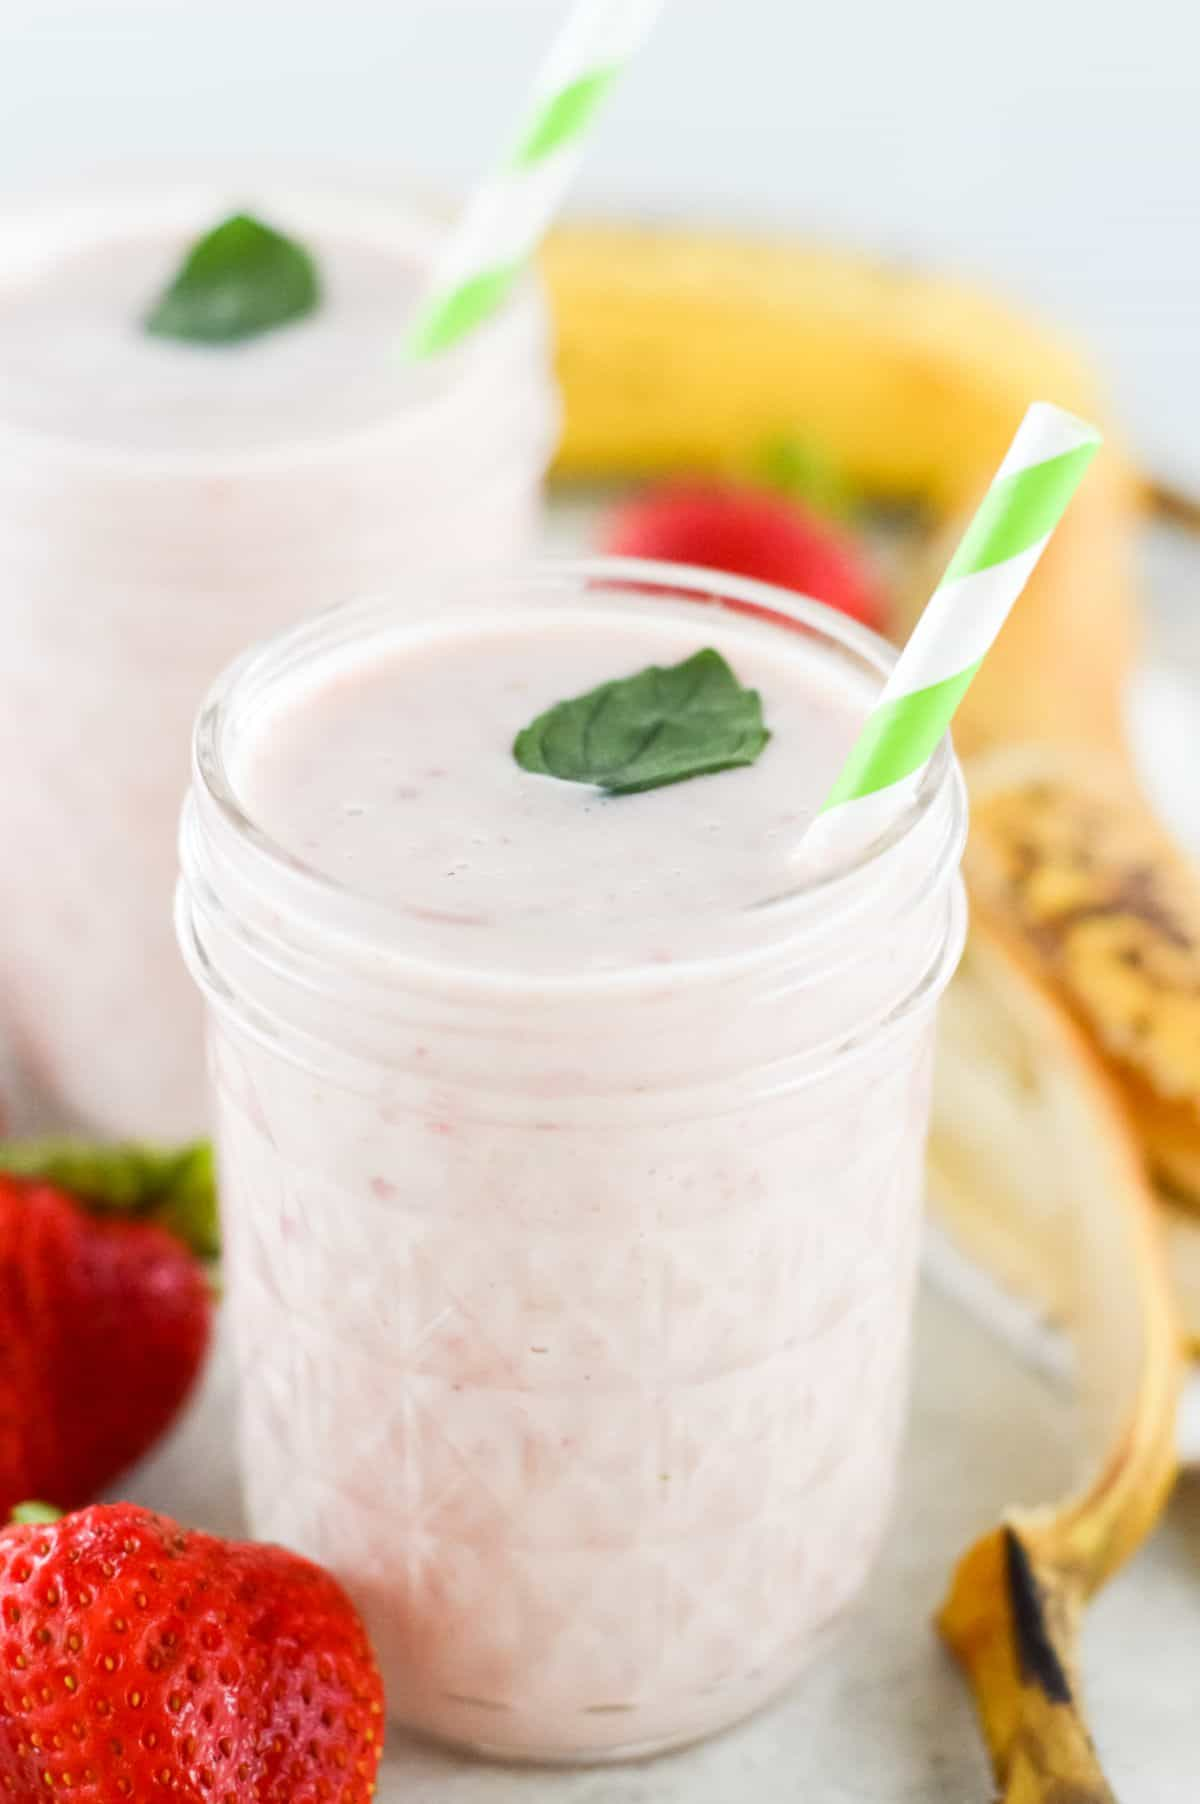 Two glasses of smoothie, on a white bench, with some strawberries and banana peel and a white tea towel around the glass.